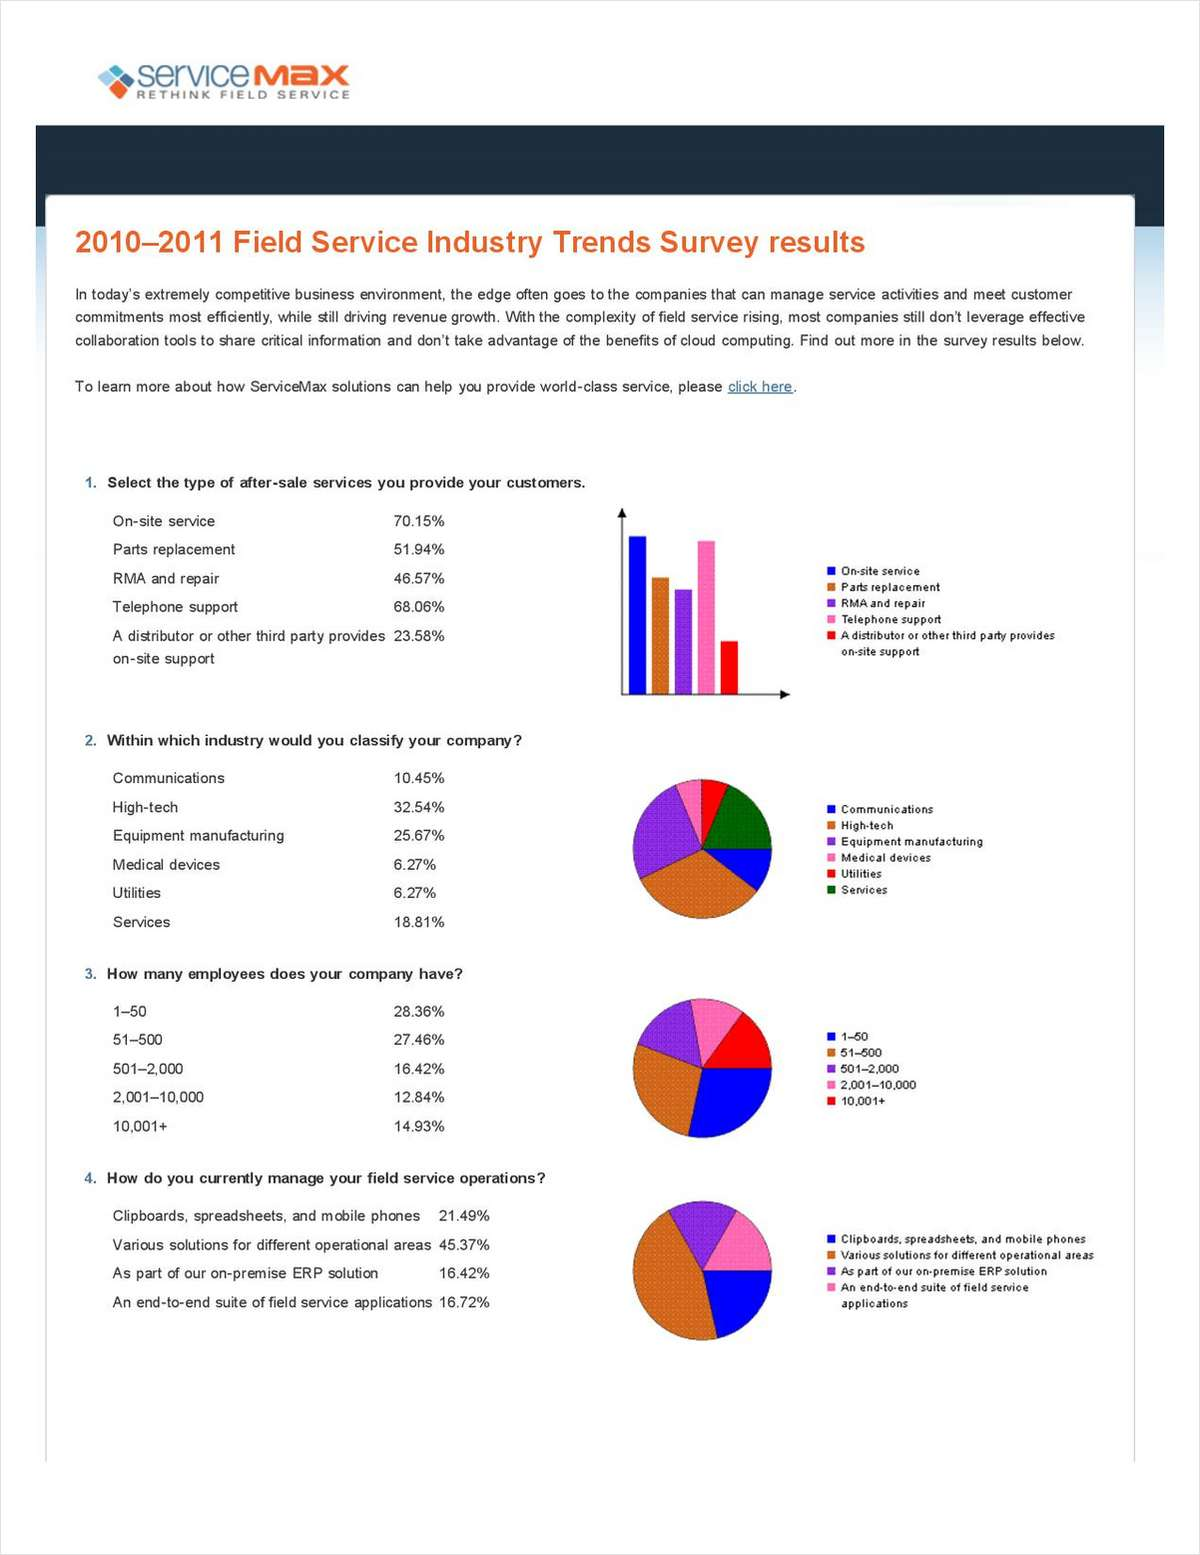 2010-2011 Field Service Industry Trends Report